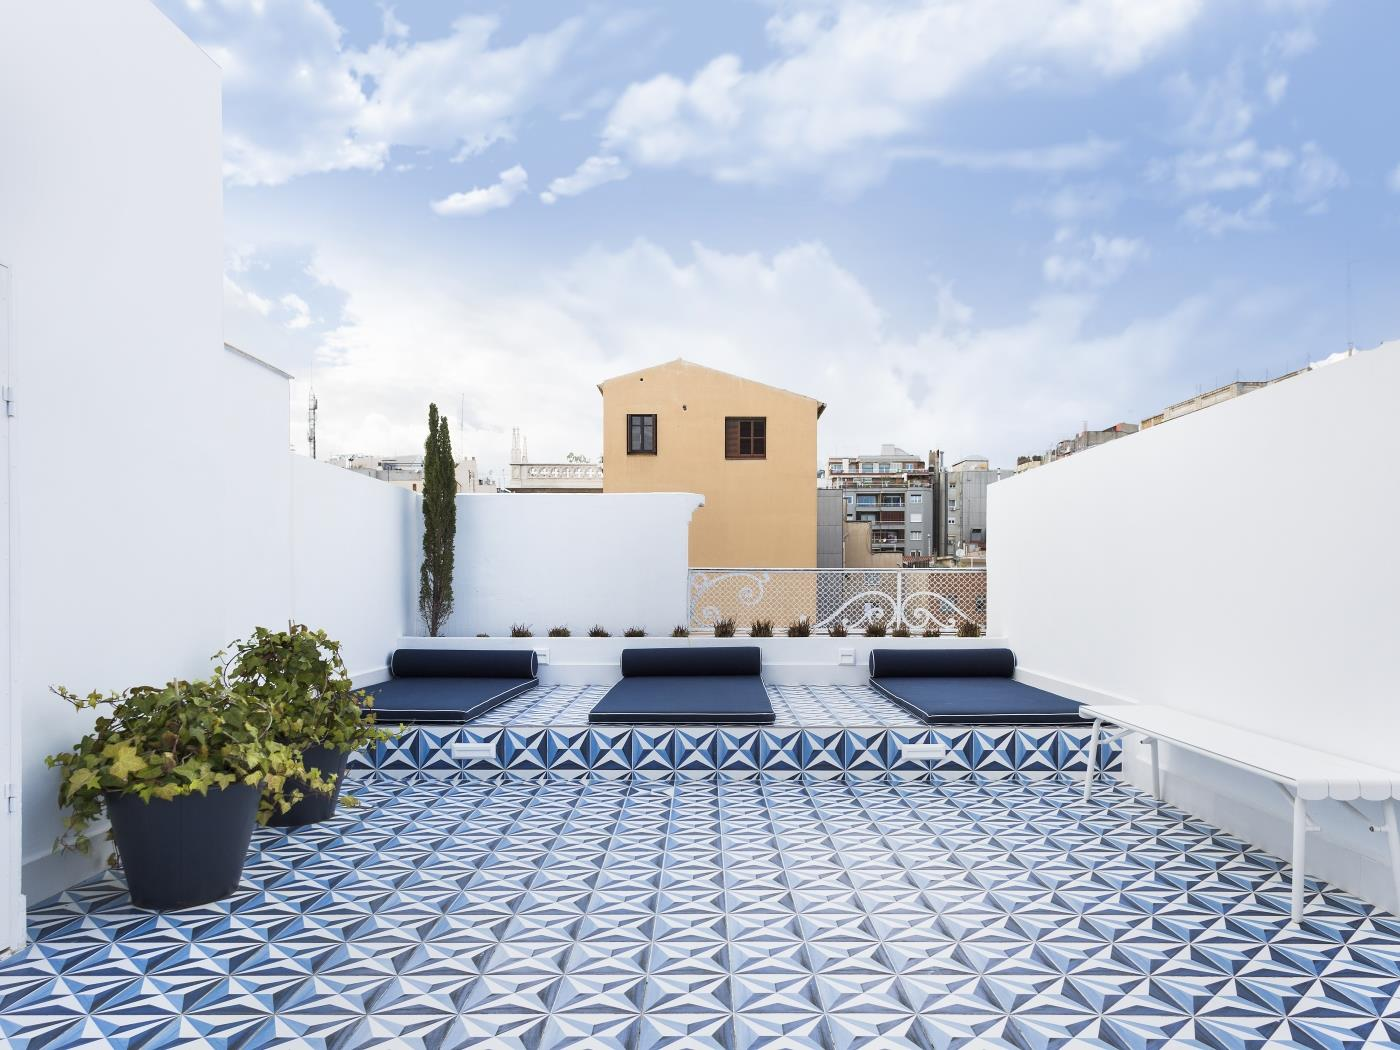 Charming apartment with private balcony and shared rooftop terrace - My Space Barcelona Apartments